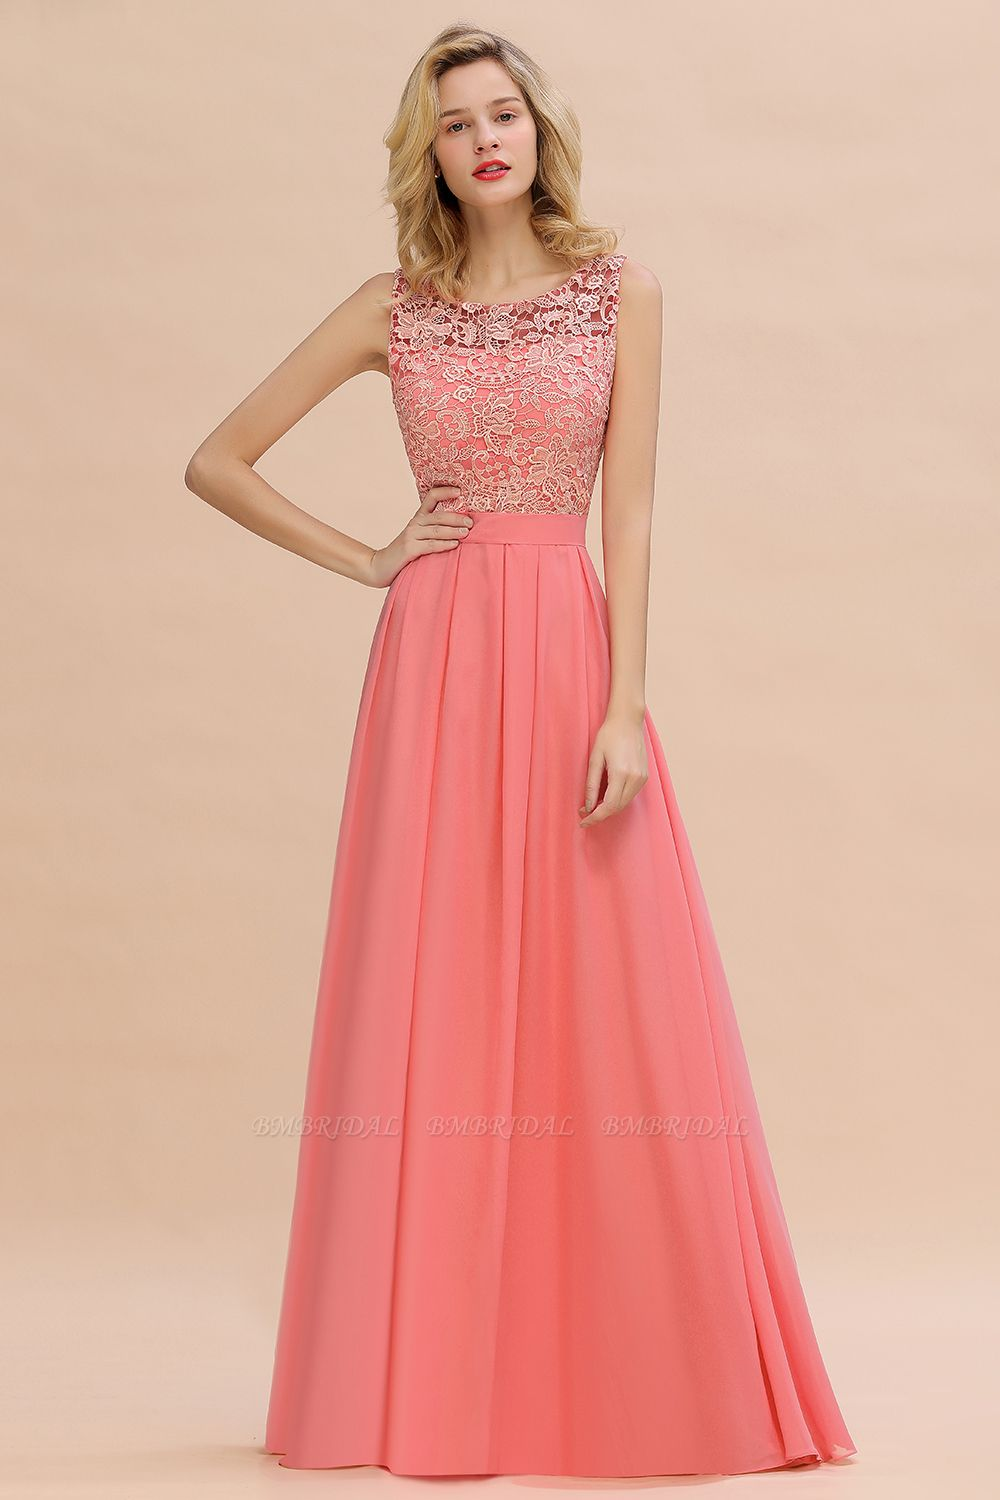 Exquisite Lace Scoop Sleeveless Bridesmaid Dresses Online with Ruffle